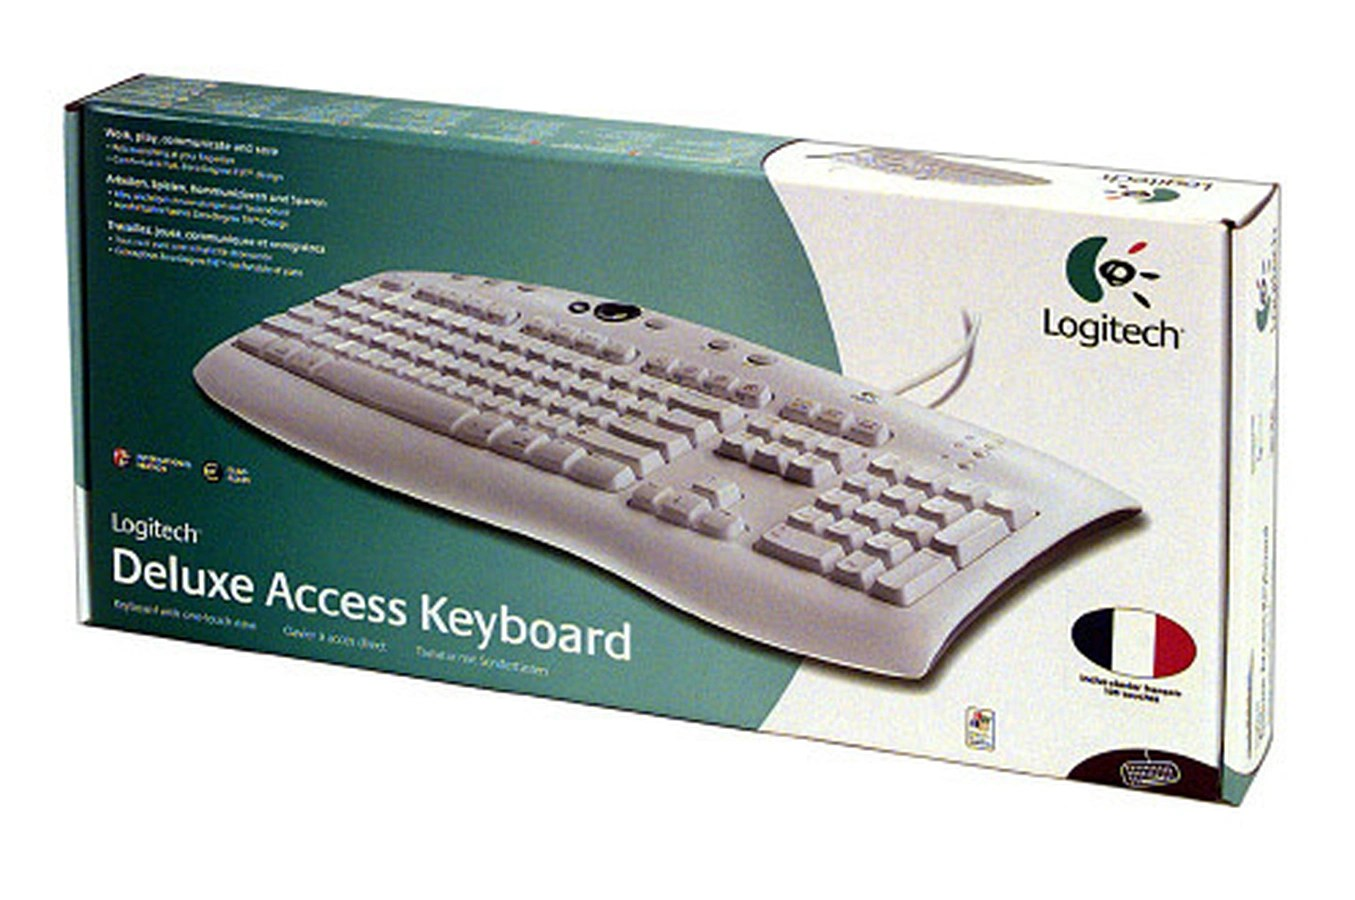 Tapis De Course Quelle Marque Choisir Clavier Logitech Deluxe Access Keyboard 1030477 Darty